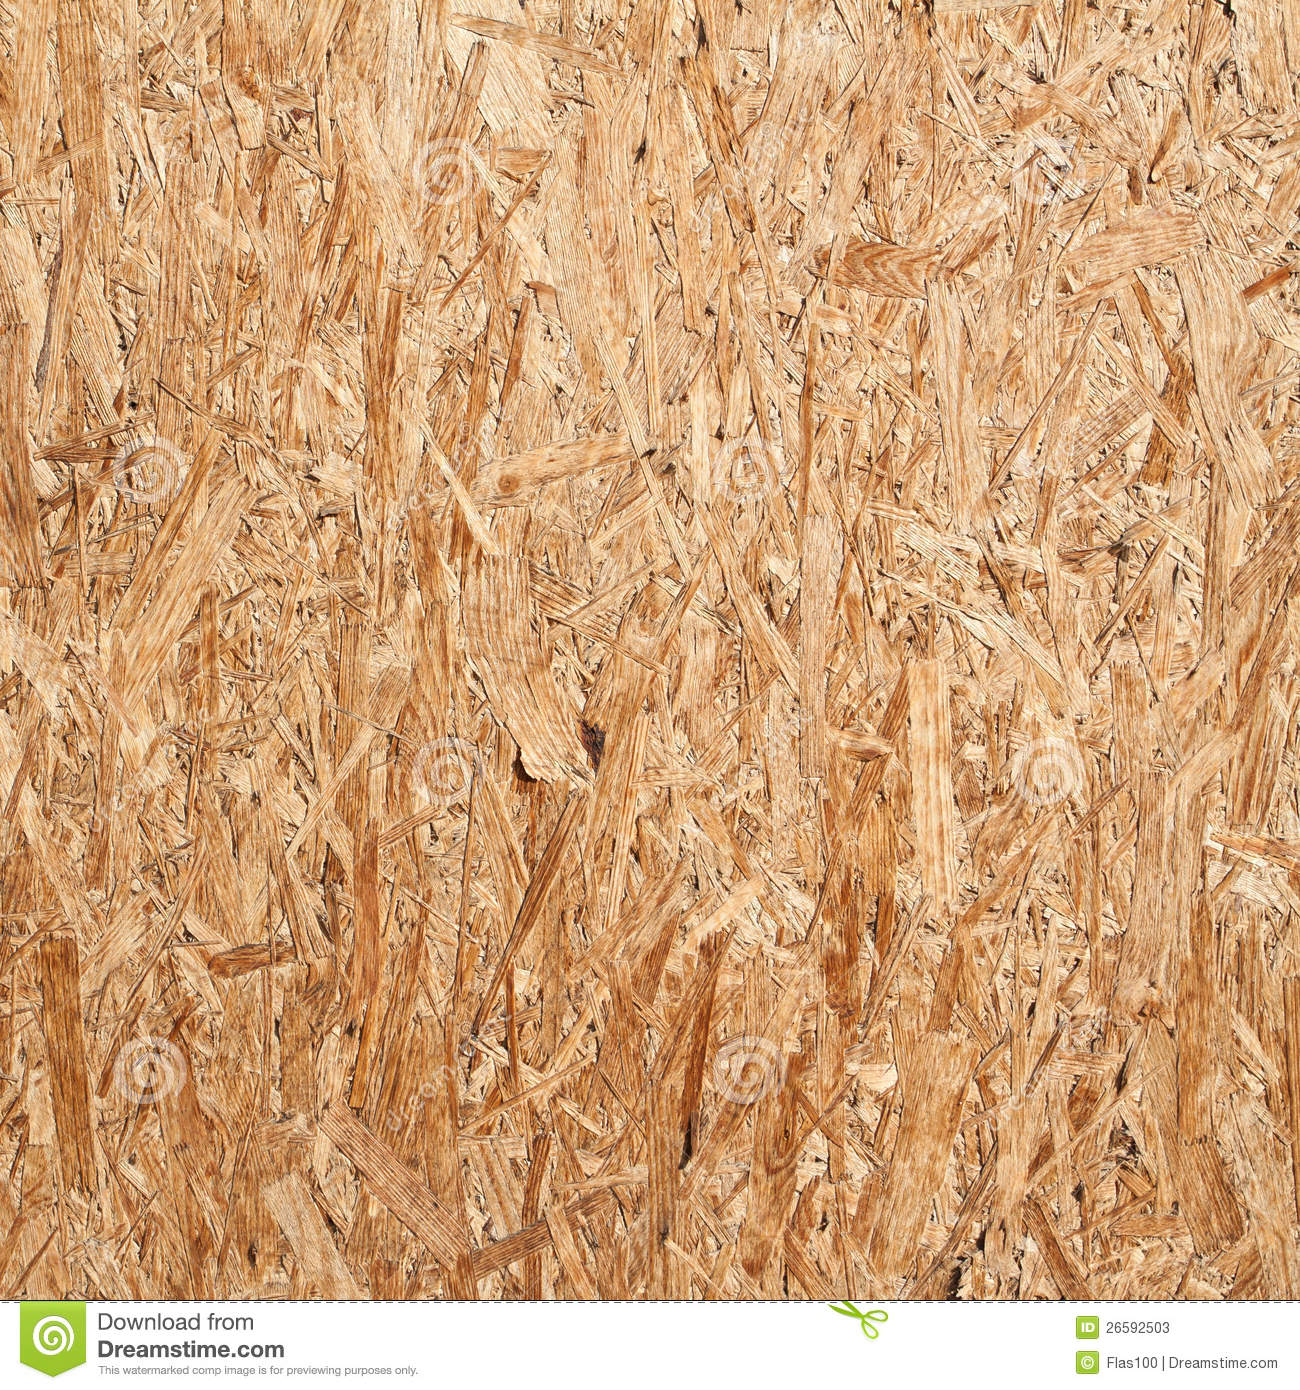 Recycled compressed wood chippings wall stock photos Reusable wood